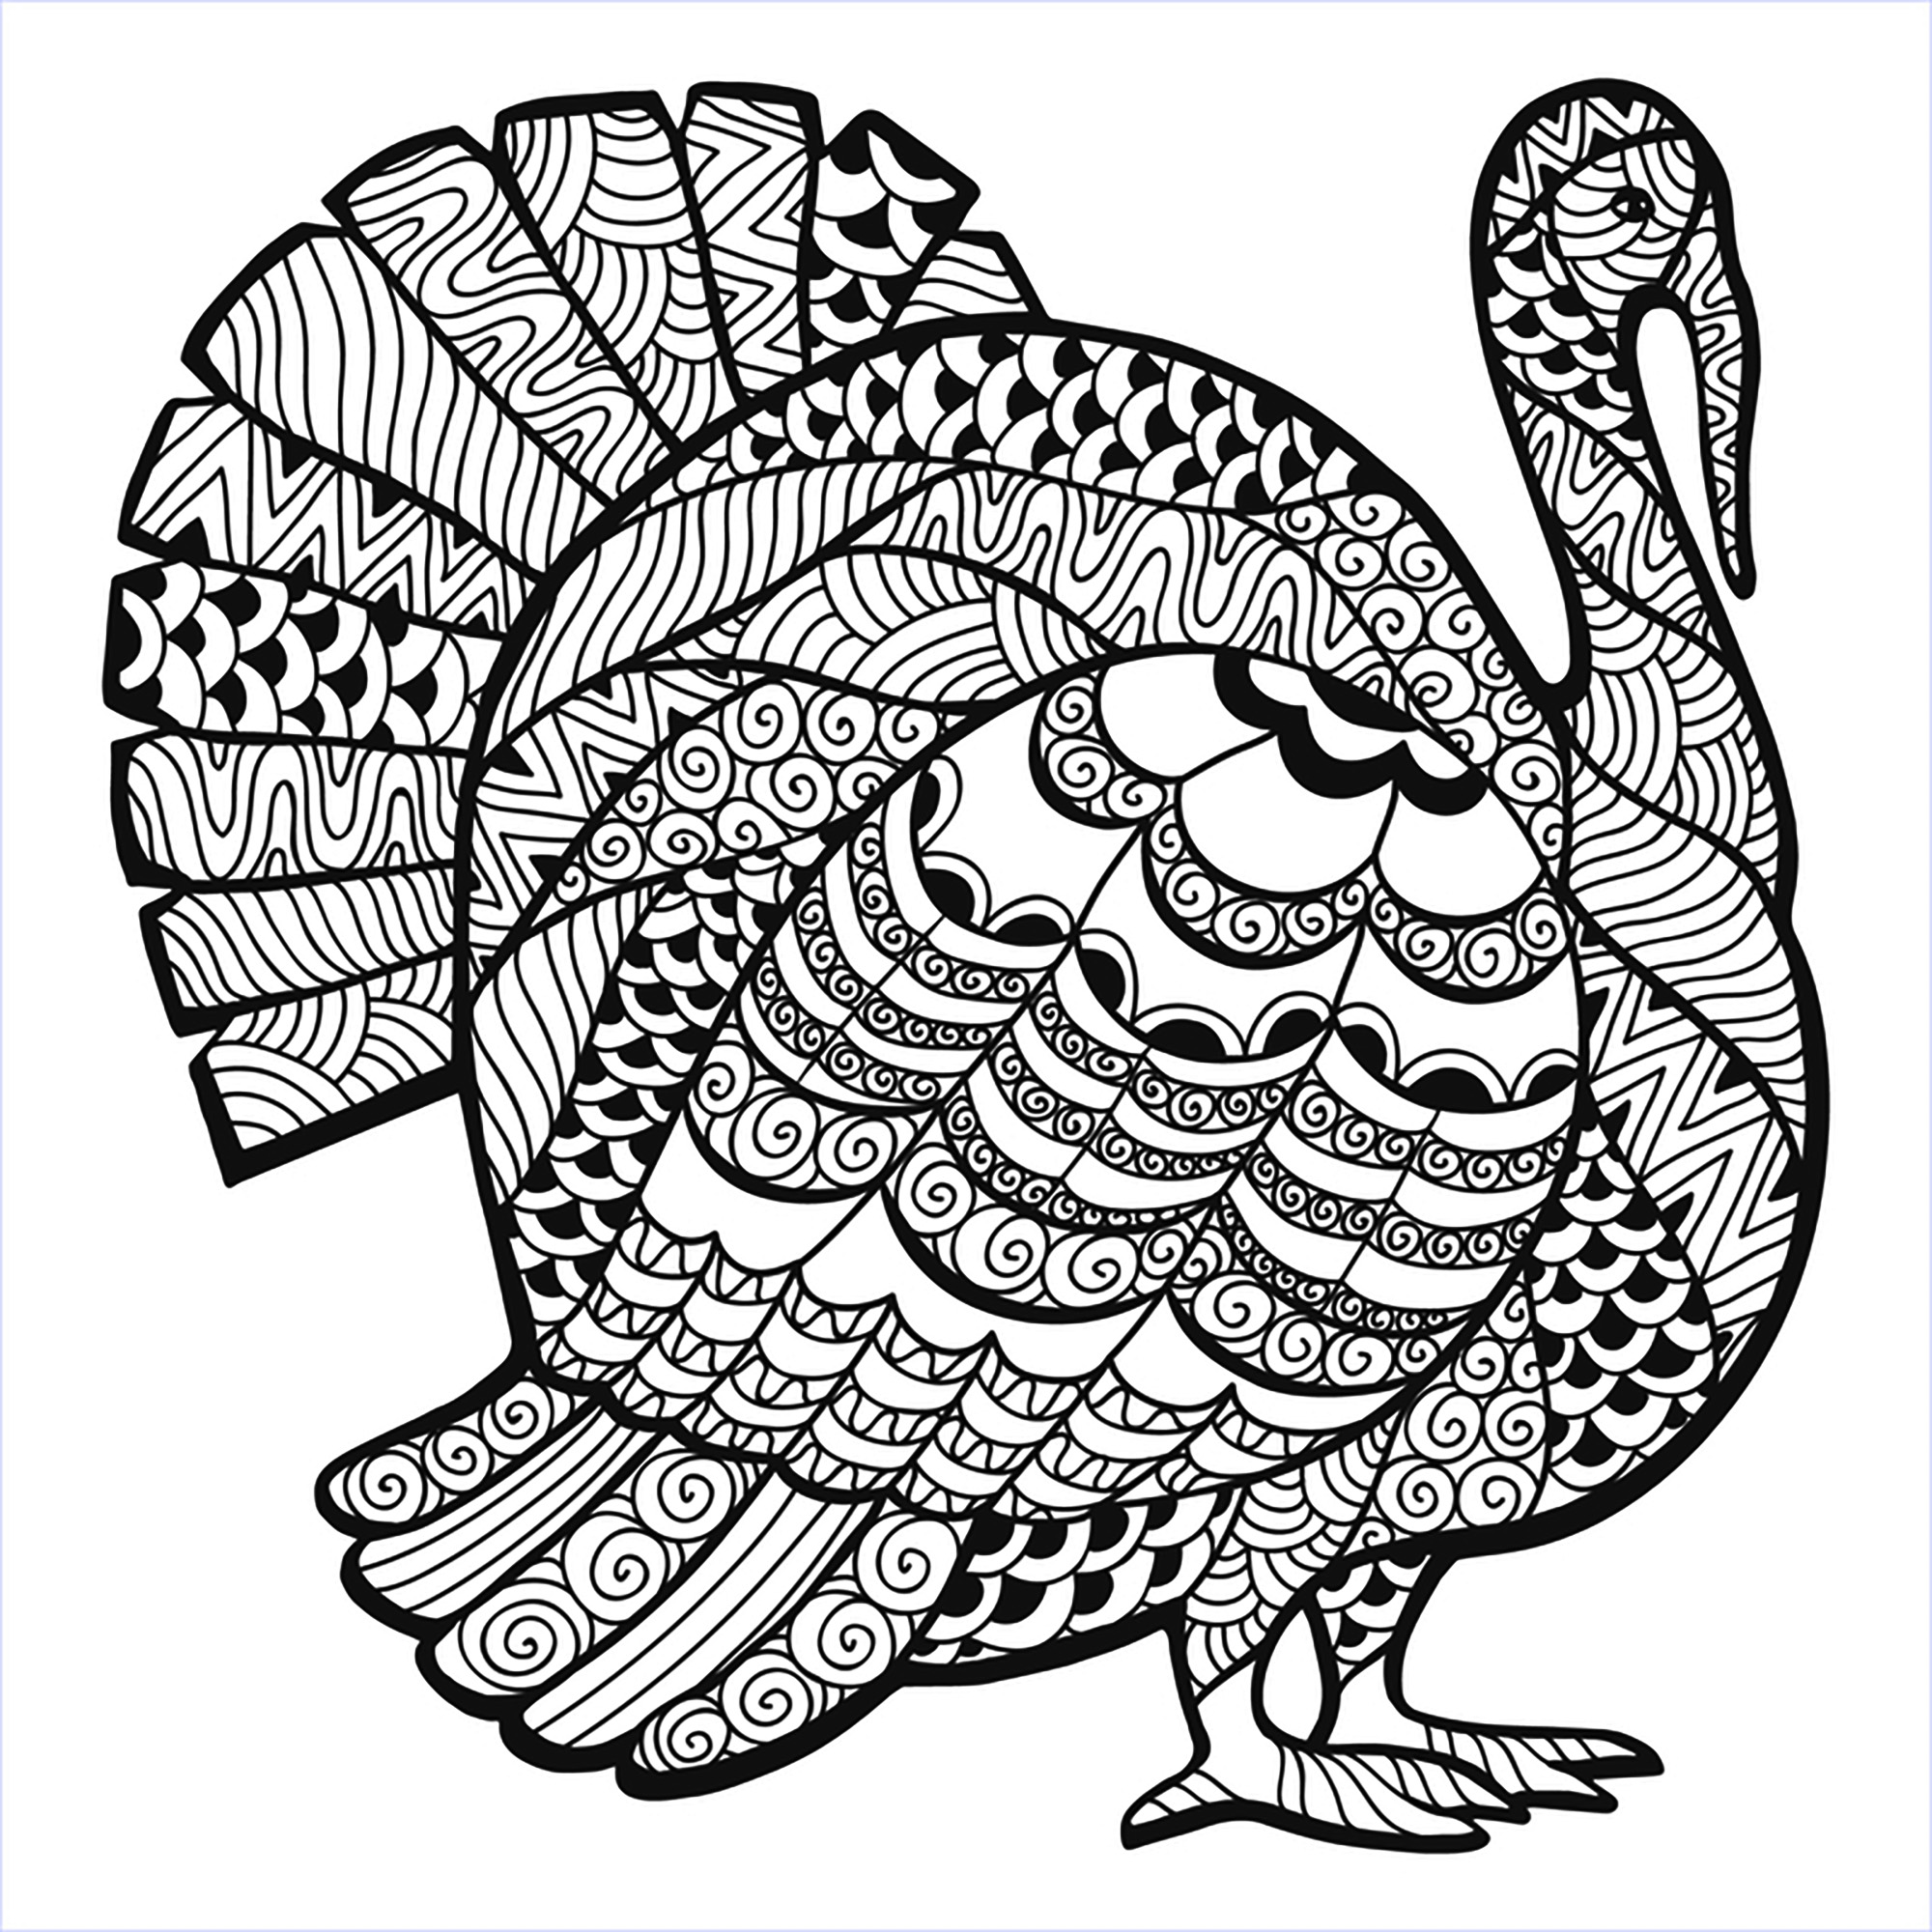 Coloring Page Free Printable 2000x2000 Thanksgiving Zentangle Turkey By Elena Medvedeva